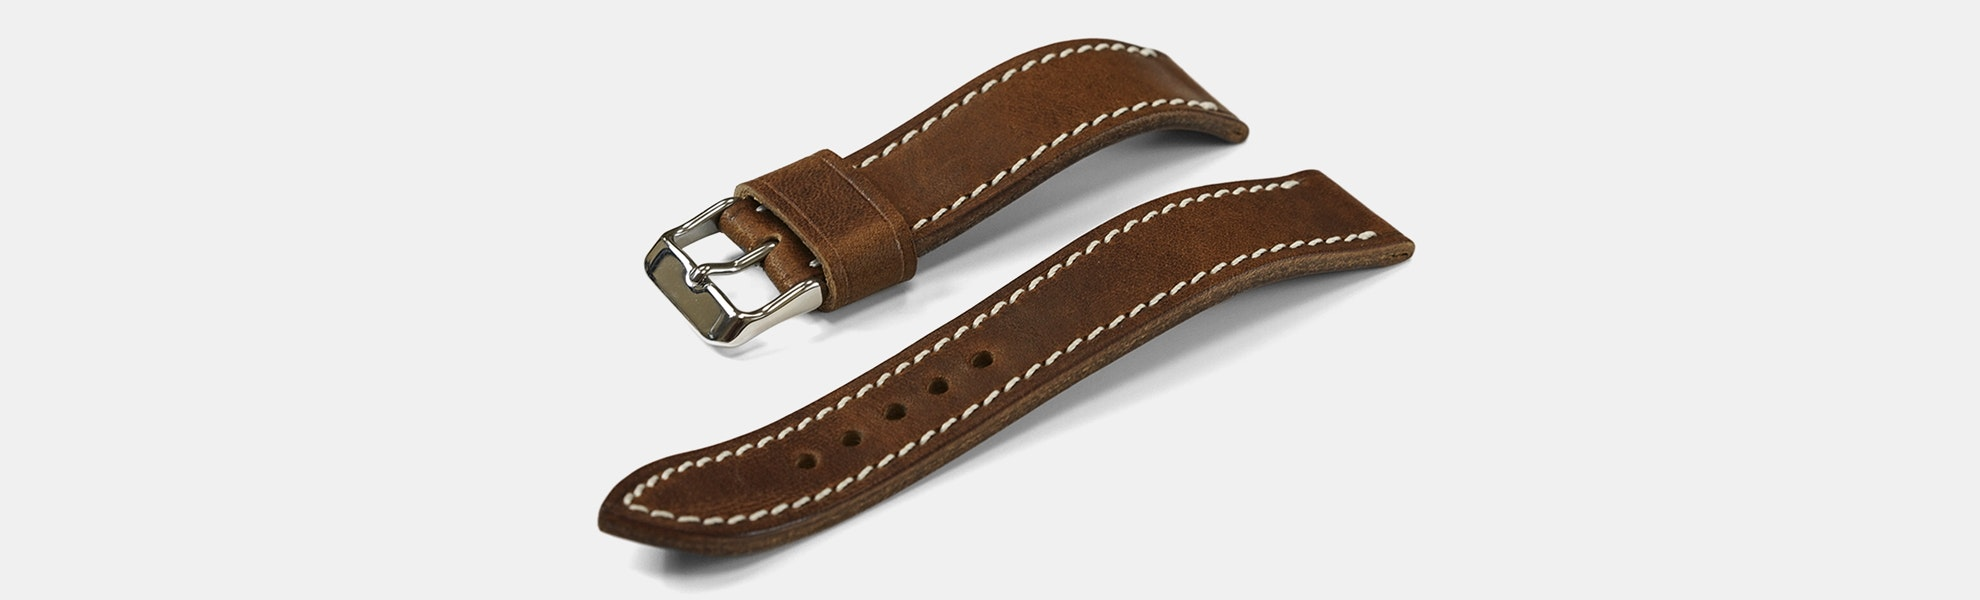 Vulture Premium Horween Derby Watch Straps